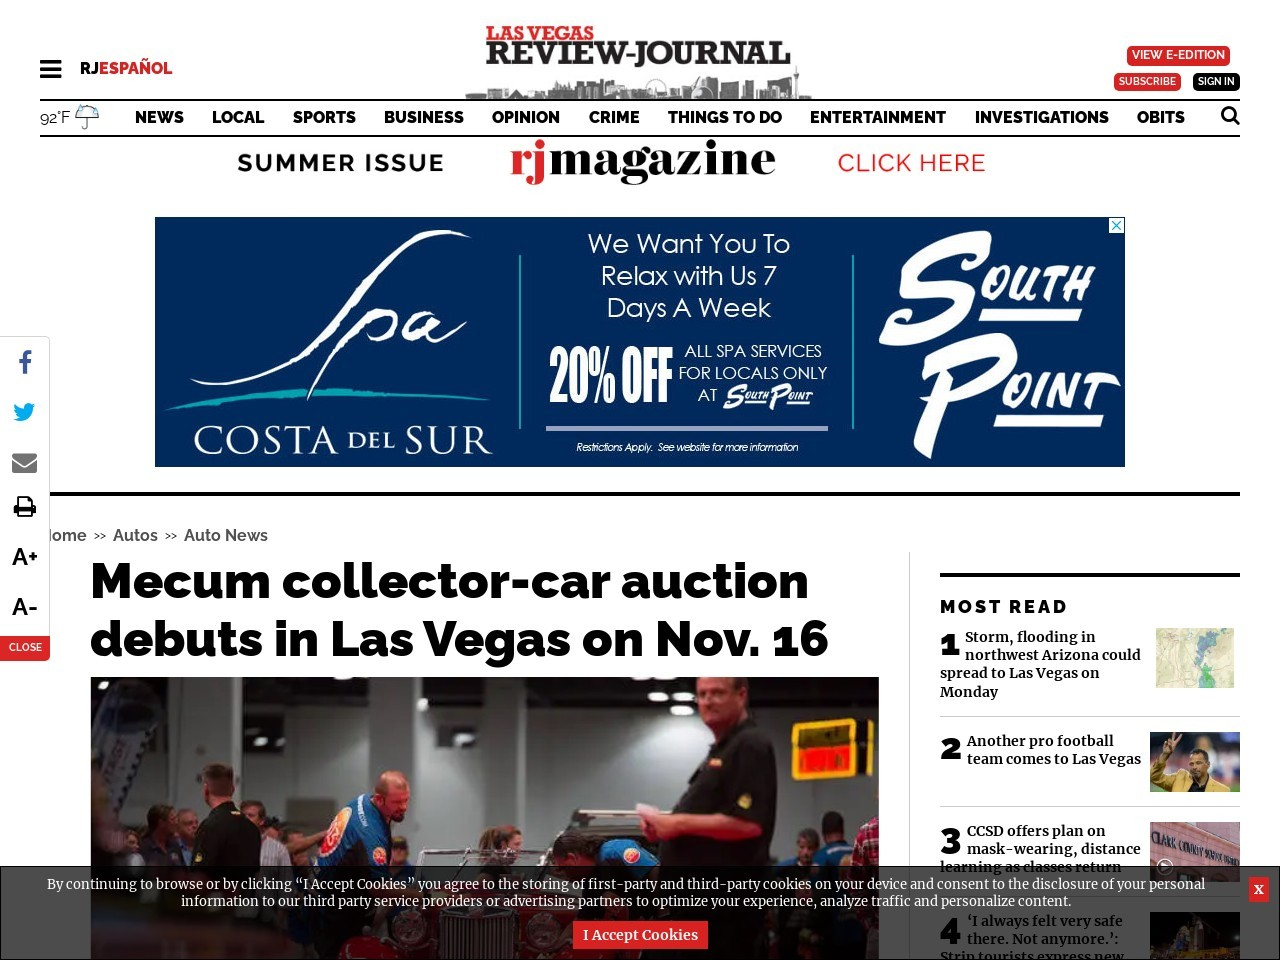 Mecum collector-car auction debuts in Las Vegas on Nov. 16